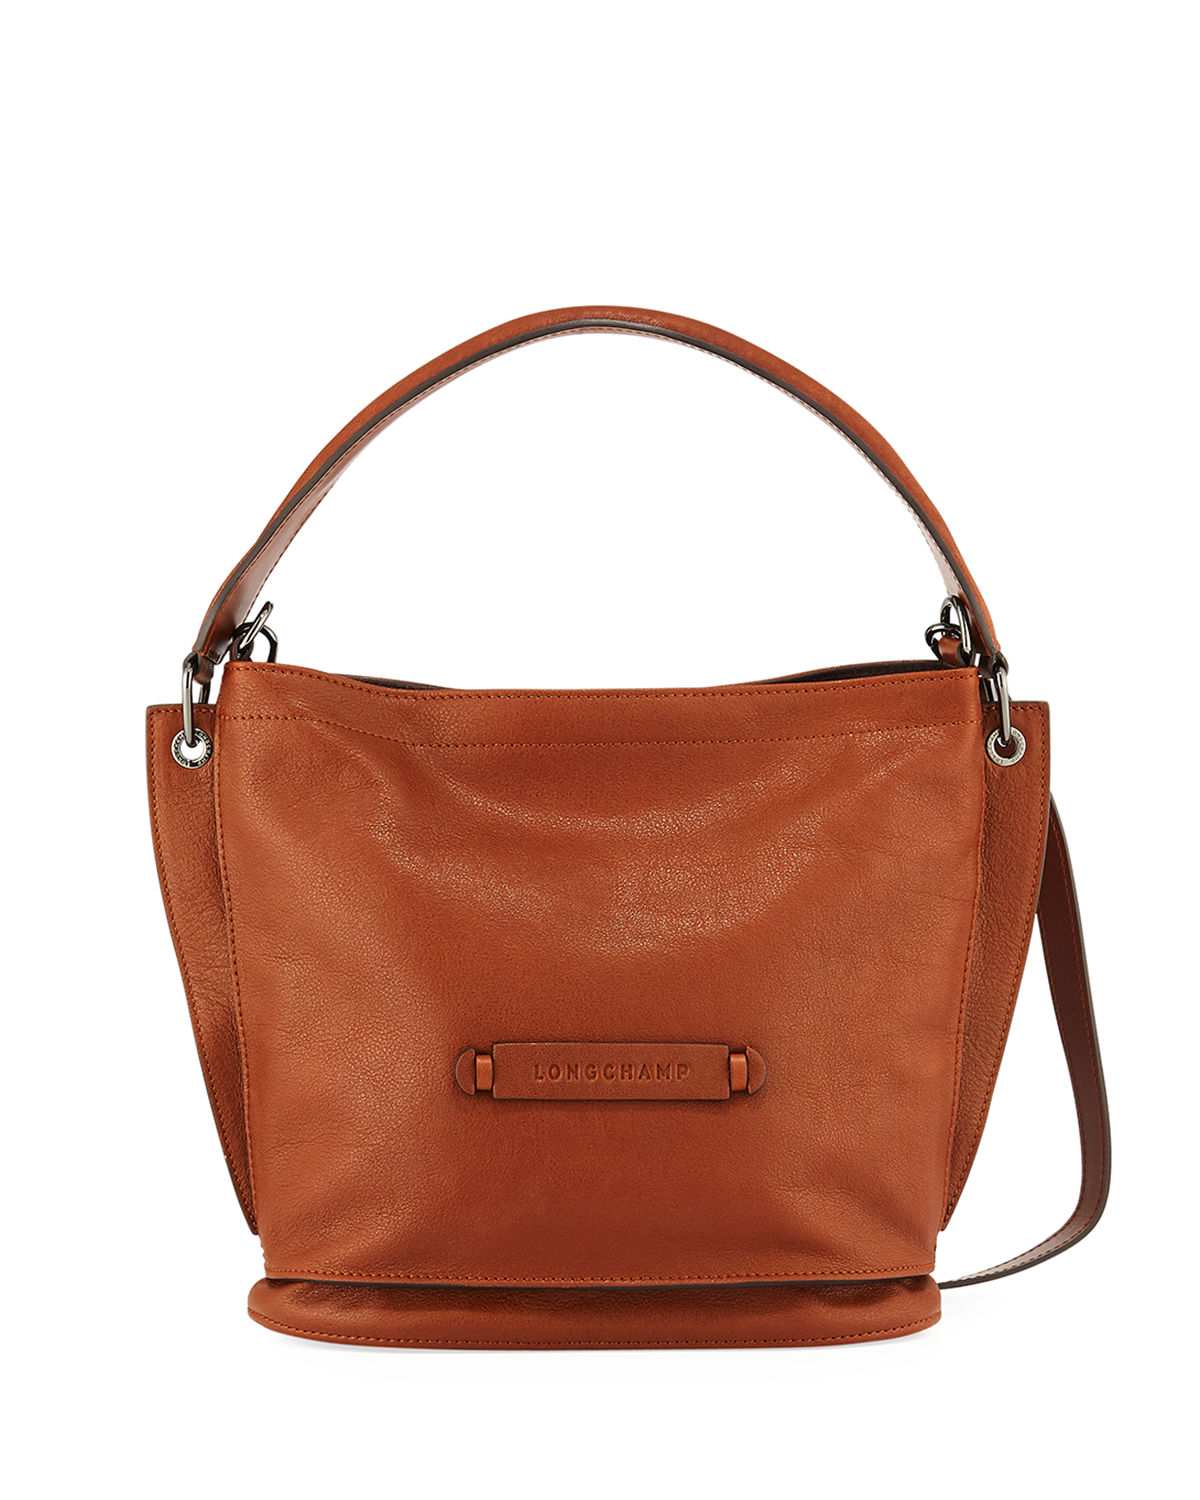 3D Leather Crossbody Hobo Bag